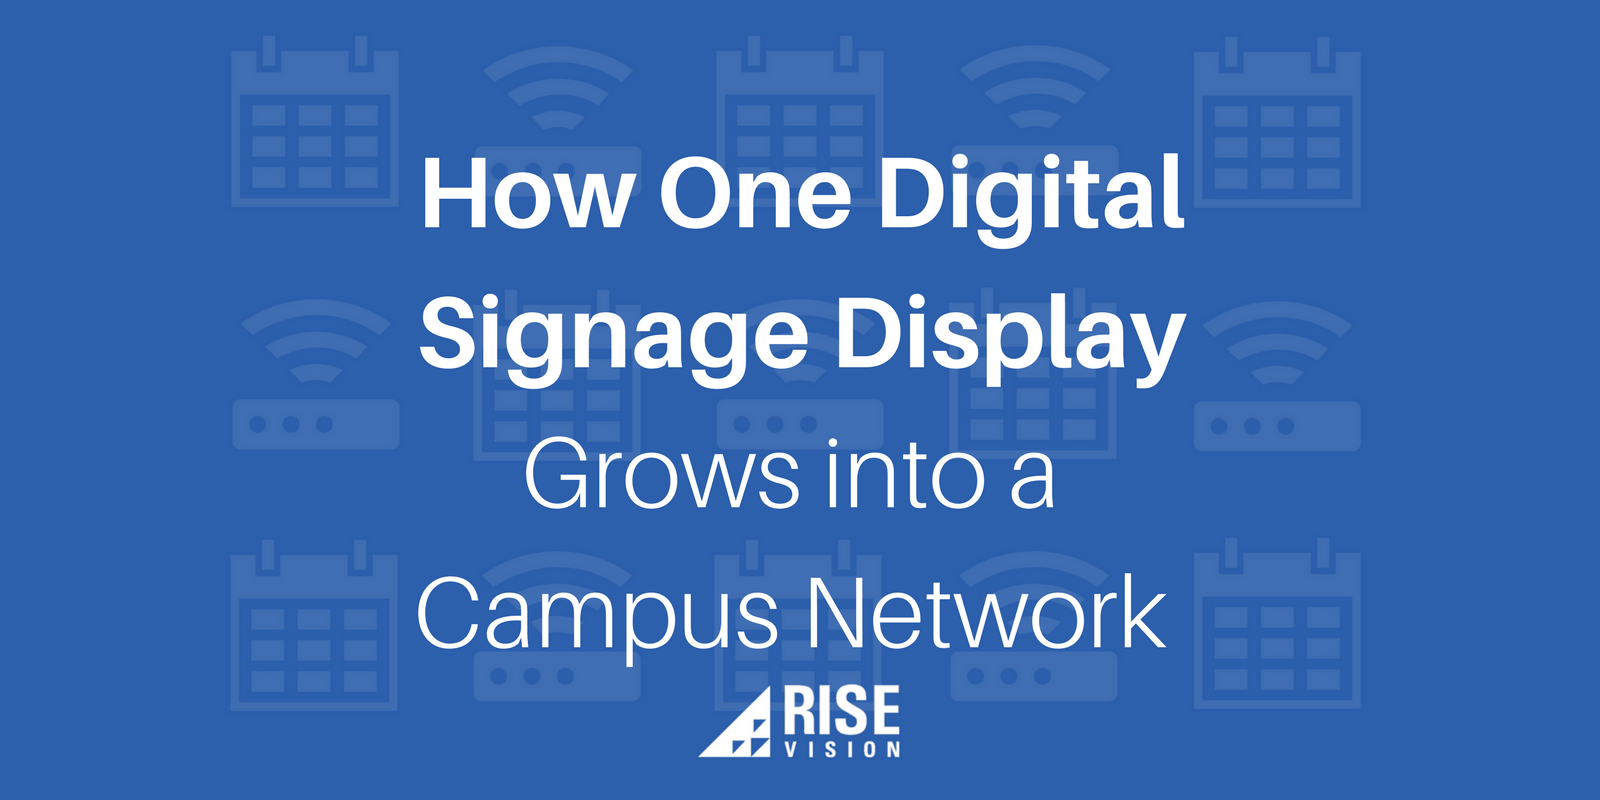 Rise Vision Digital Signage Campus College University Network.png